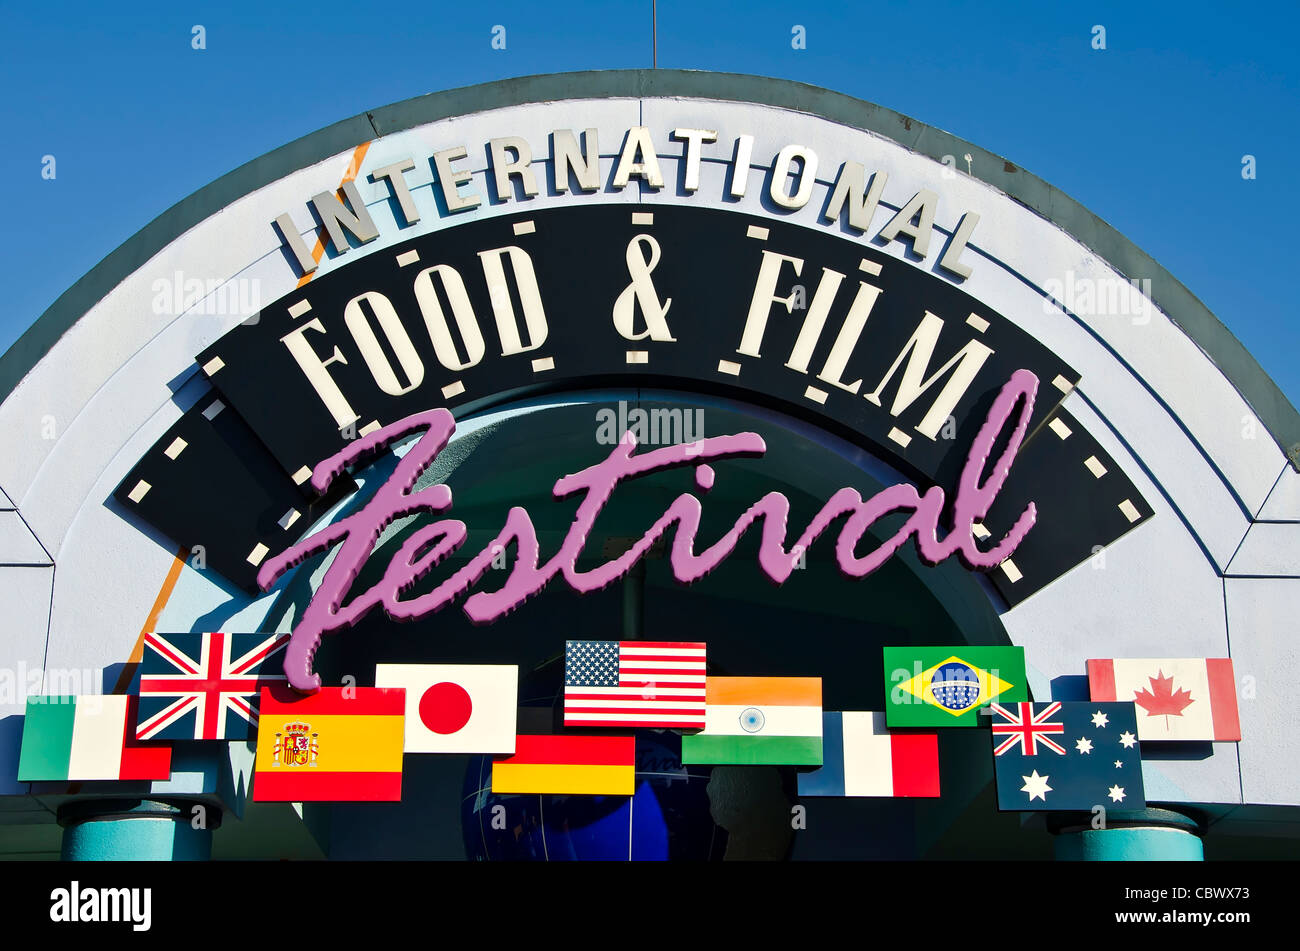 International Food & Film Festival cafeteria-style restaurant sign at Universal Studios Orlando Florida - Stock Image